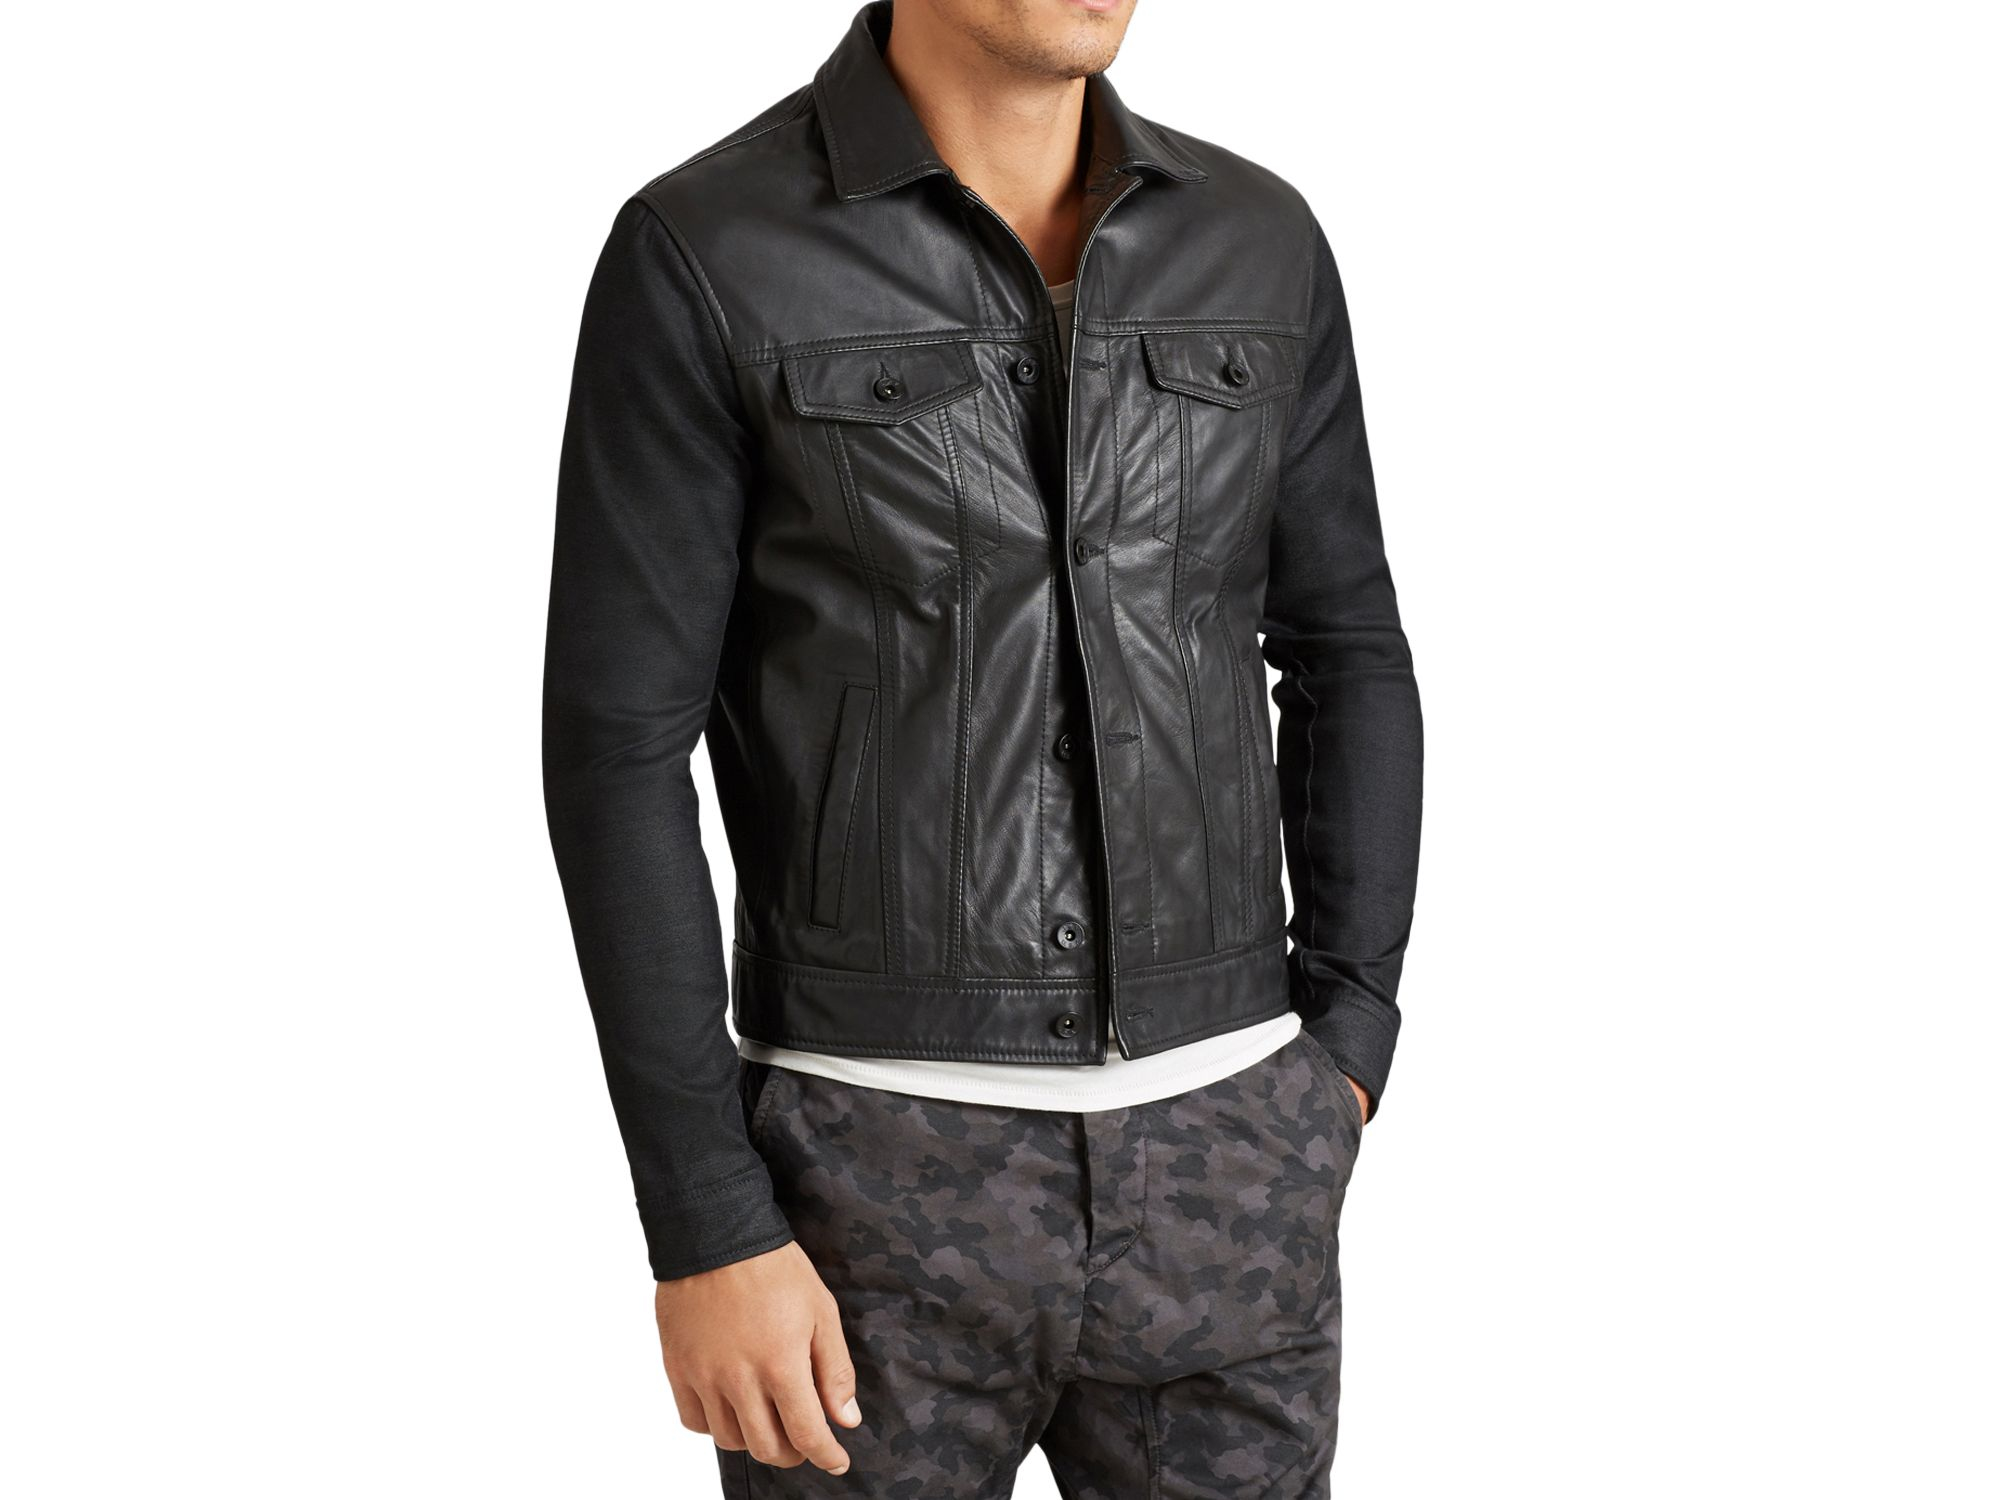 Varvatos leather jacket